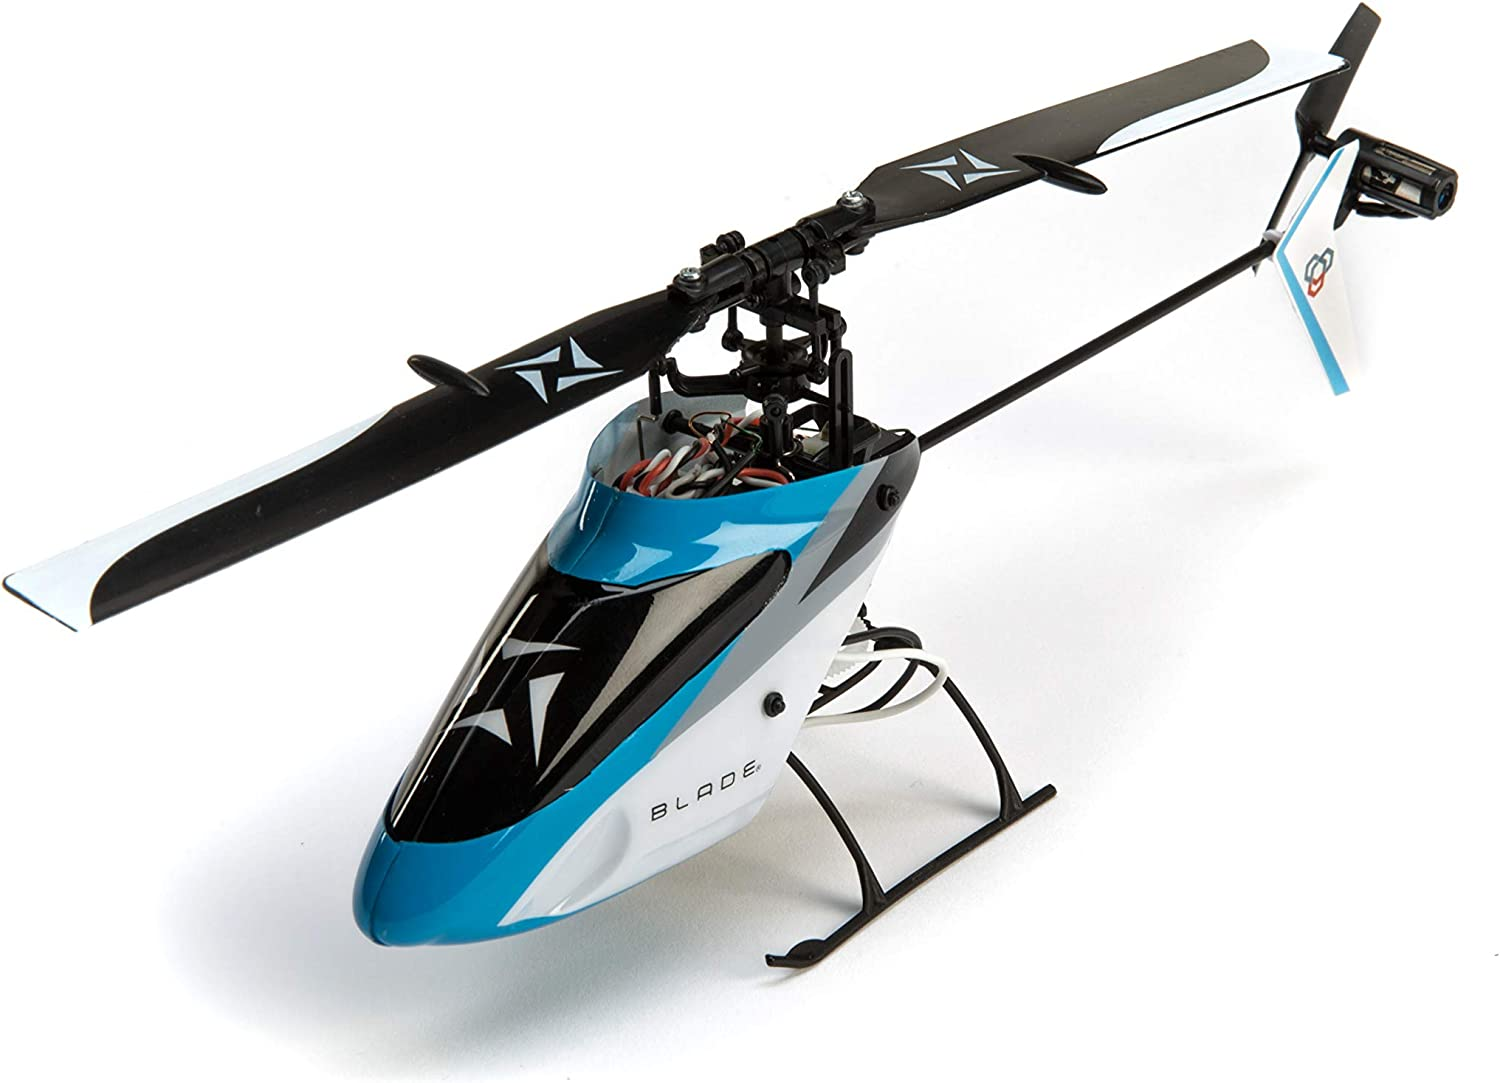 Blade Nano S2 Ultra Micro RC Helicopter BNF with Safe Tech (Includes 150mAh 1S LiPo Battery & USB Charger | Transmitter Sold Separately), BLH1380